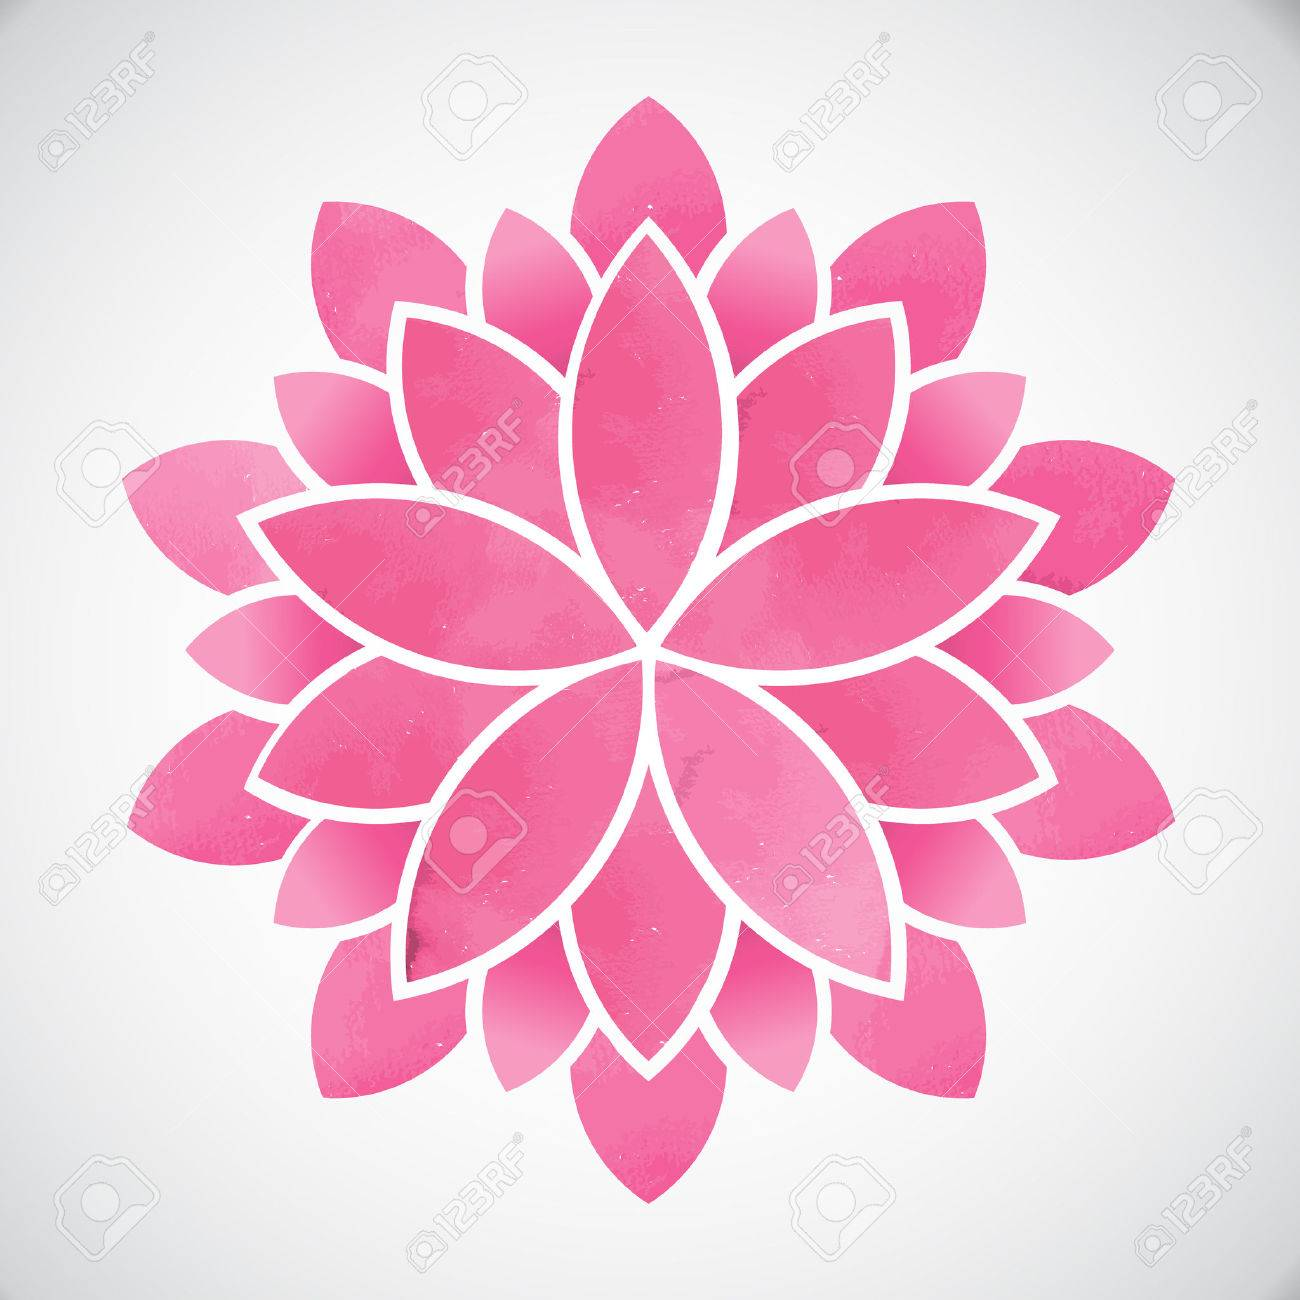 Lotus Flowerwatercolor Style Vector Graphic Design Royalty Free